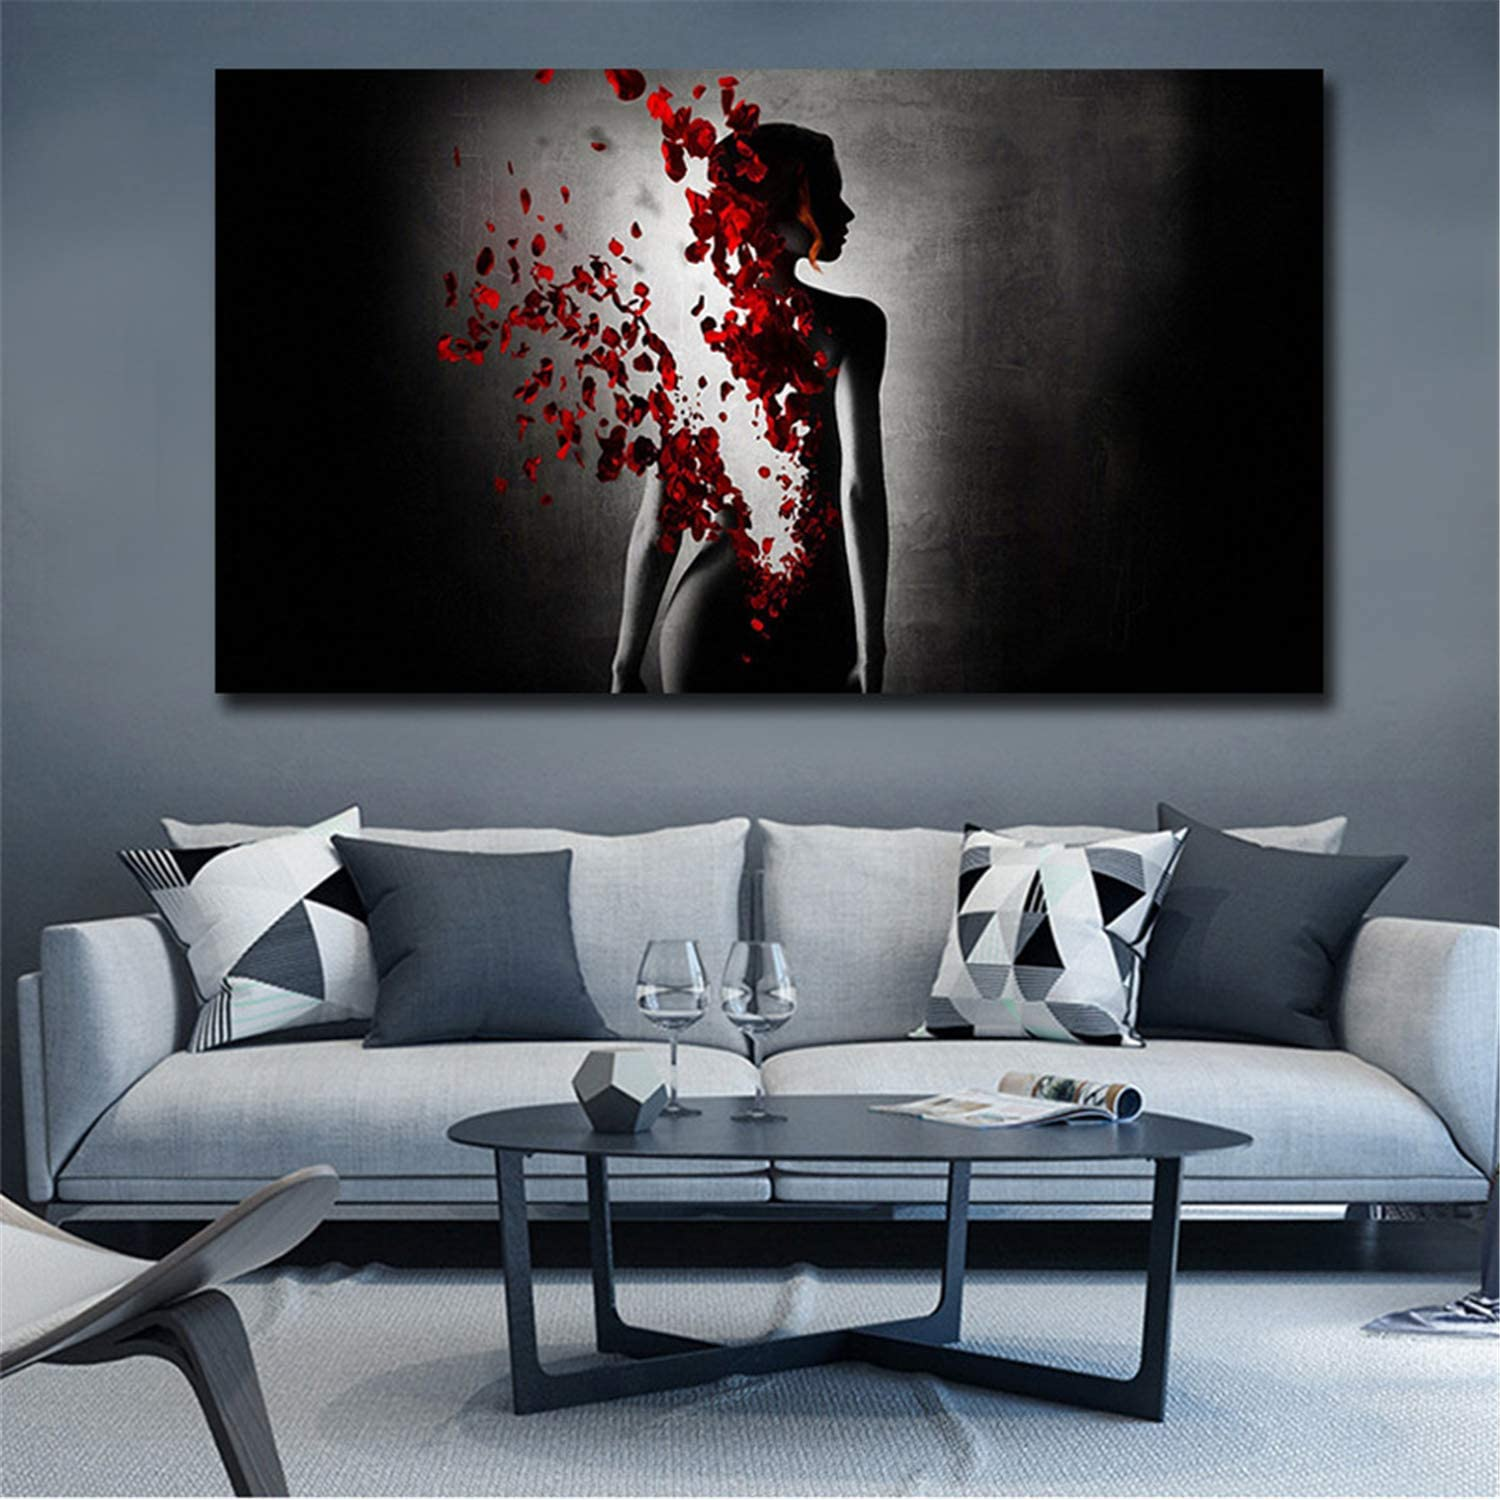 Movie Character Paintings HD Prints Abstract Poster Wall Canvas FT